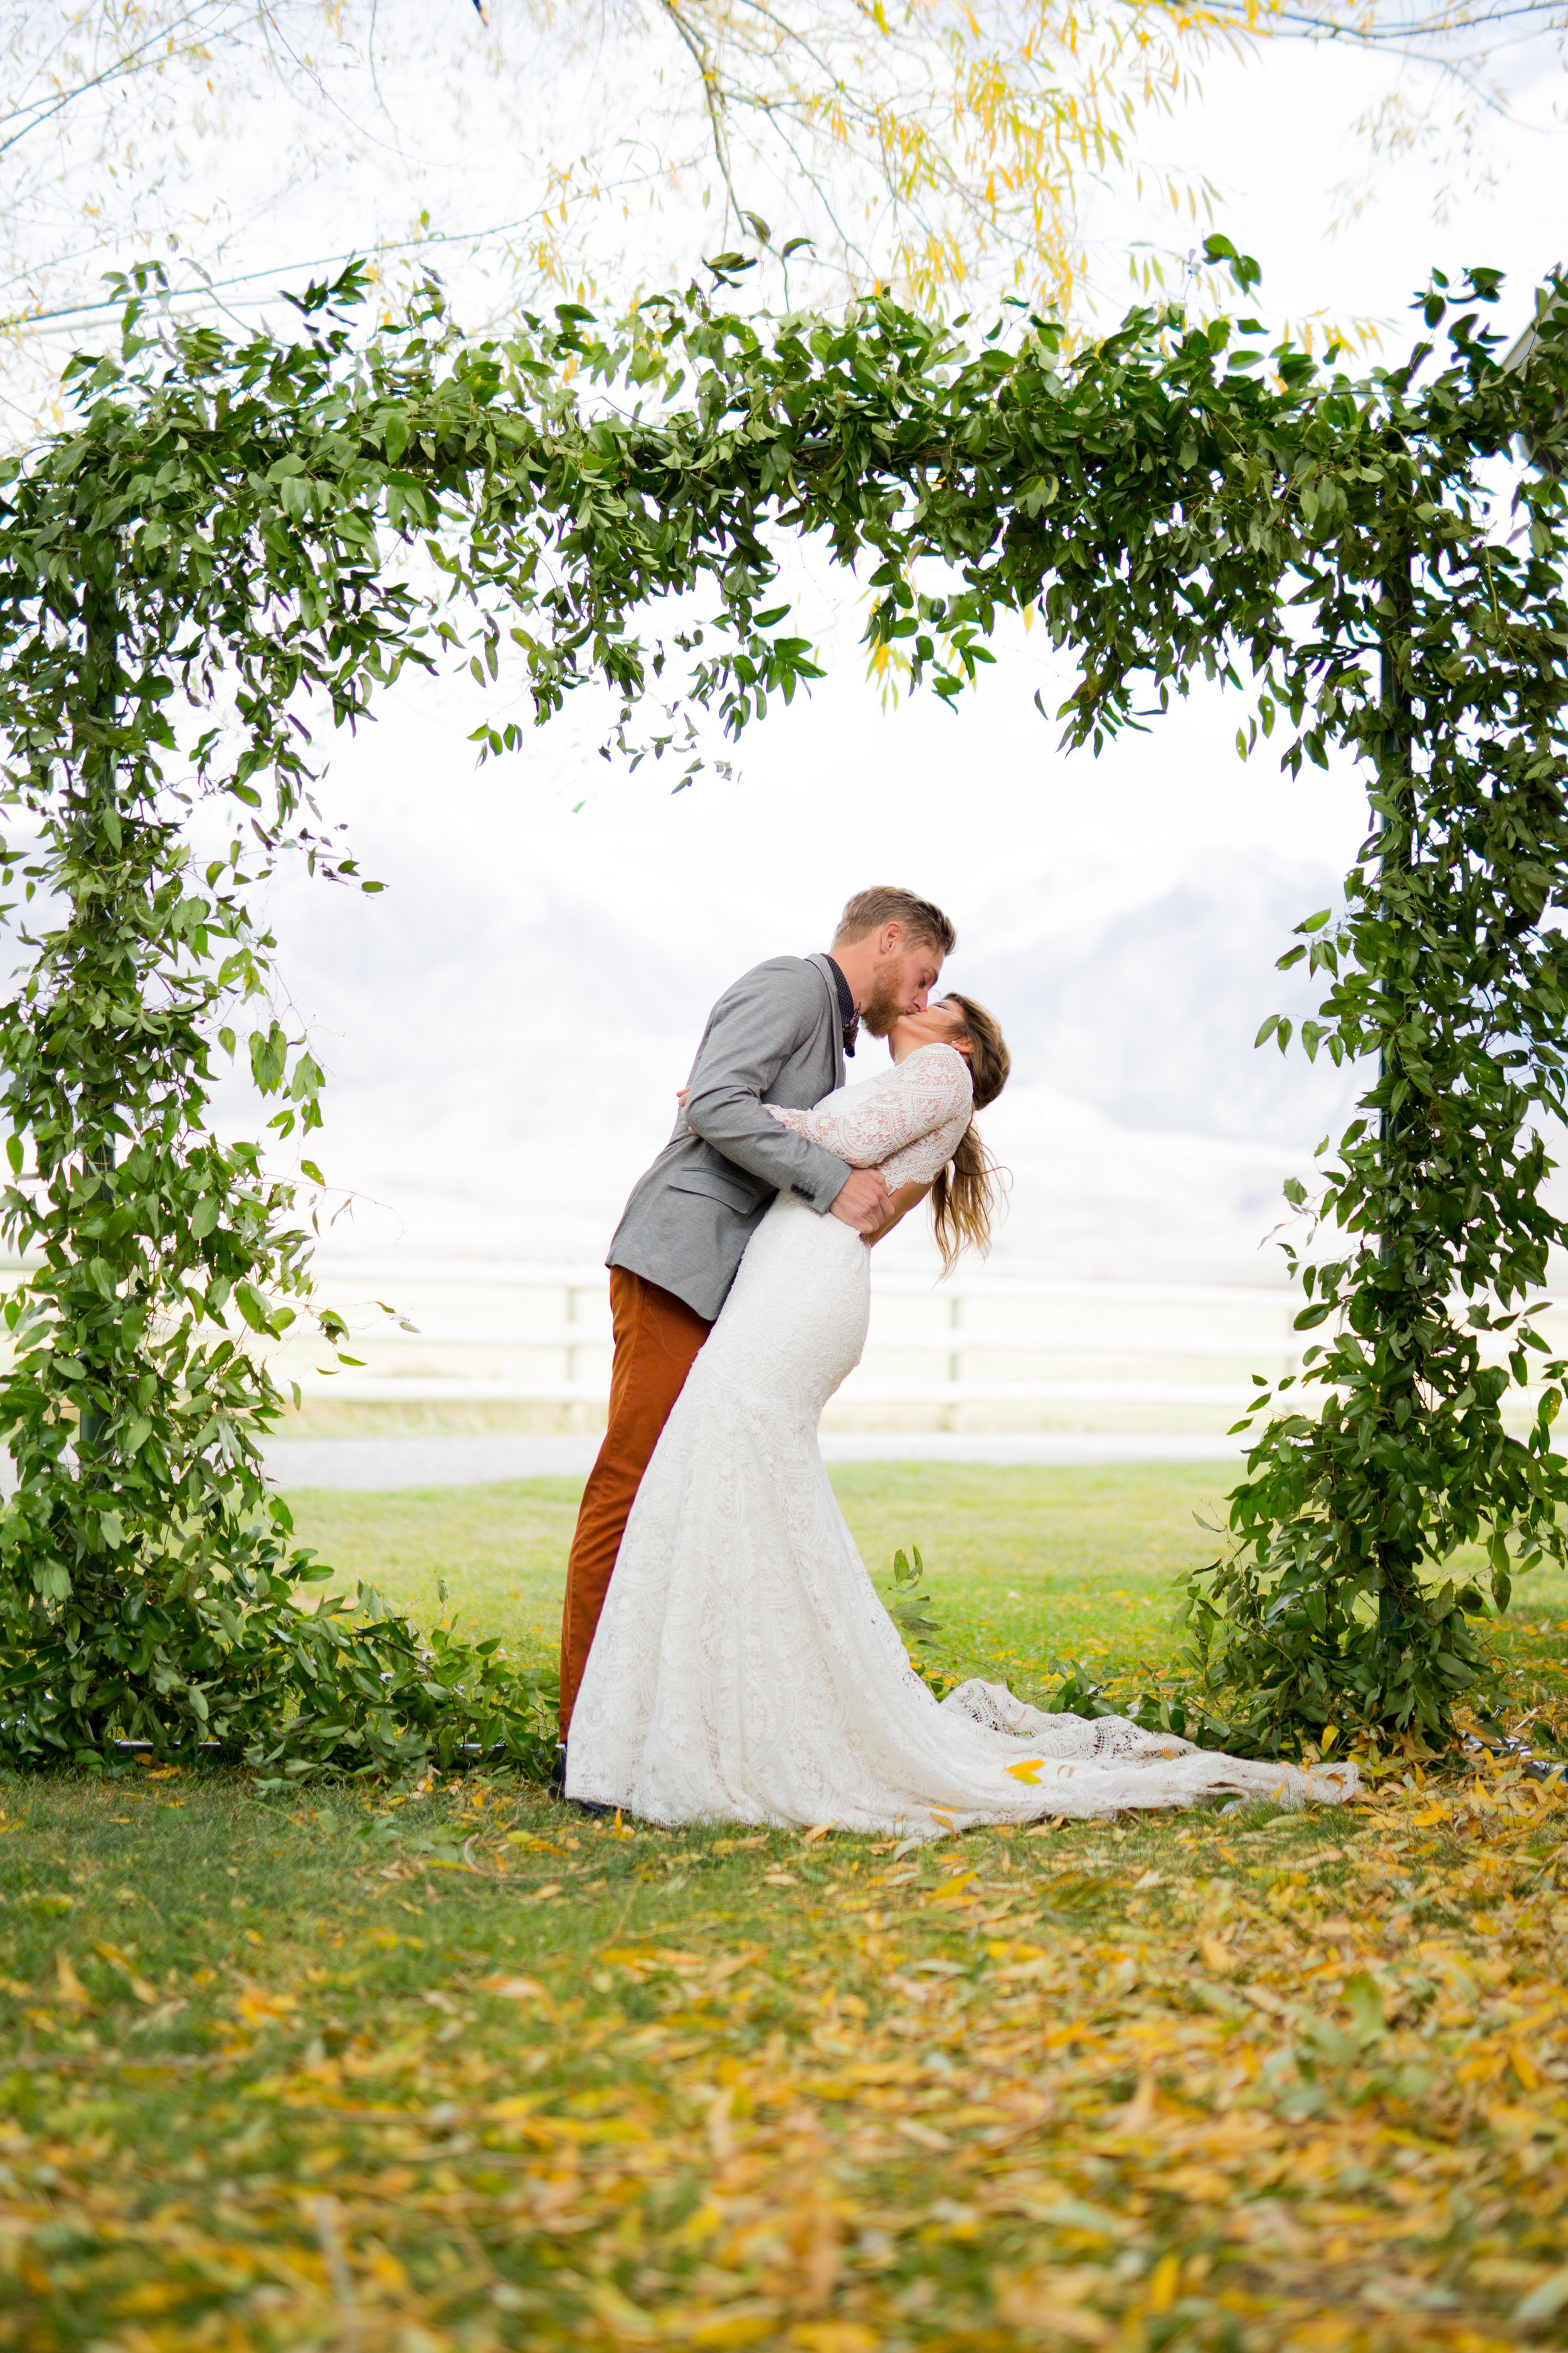 the styled shoot we did in Paradise Valley, Montana for a wedding and engagement package